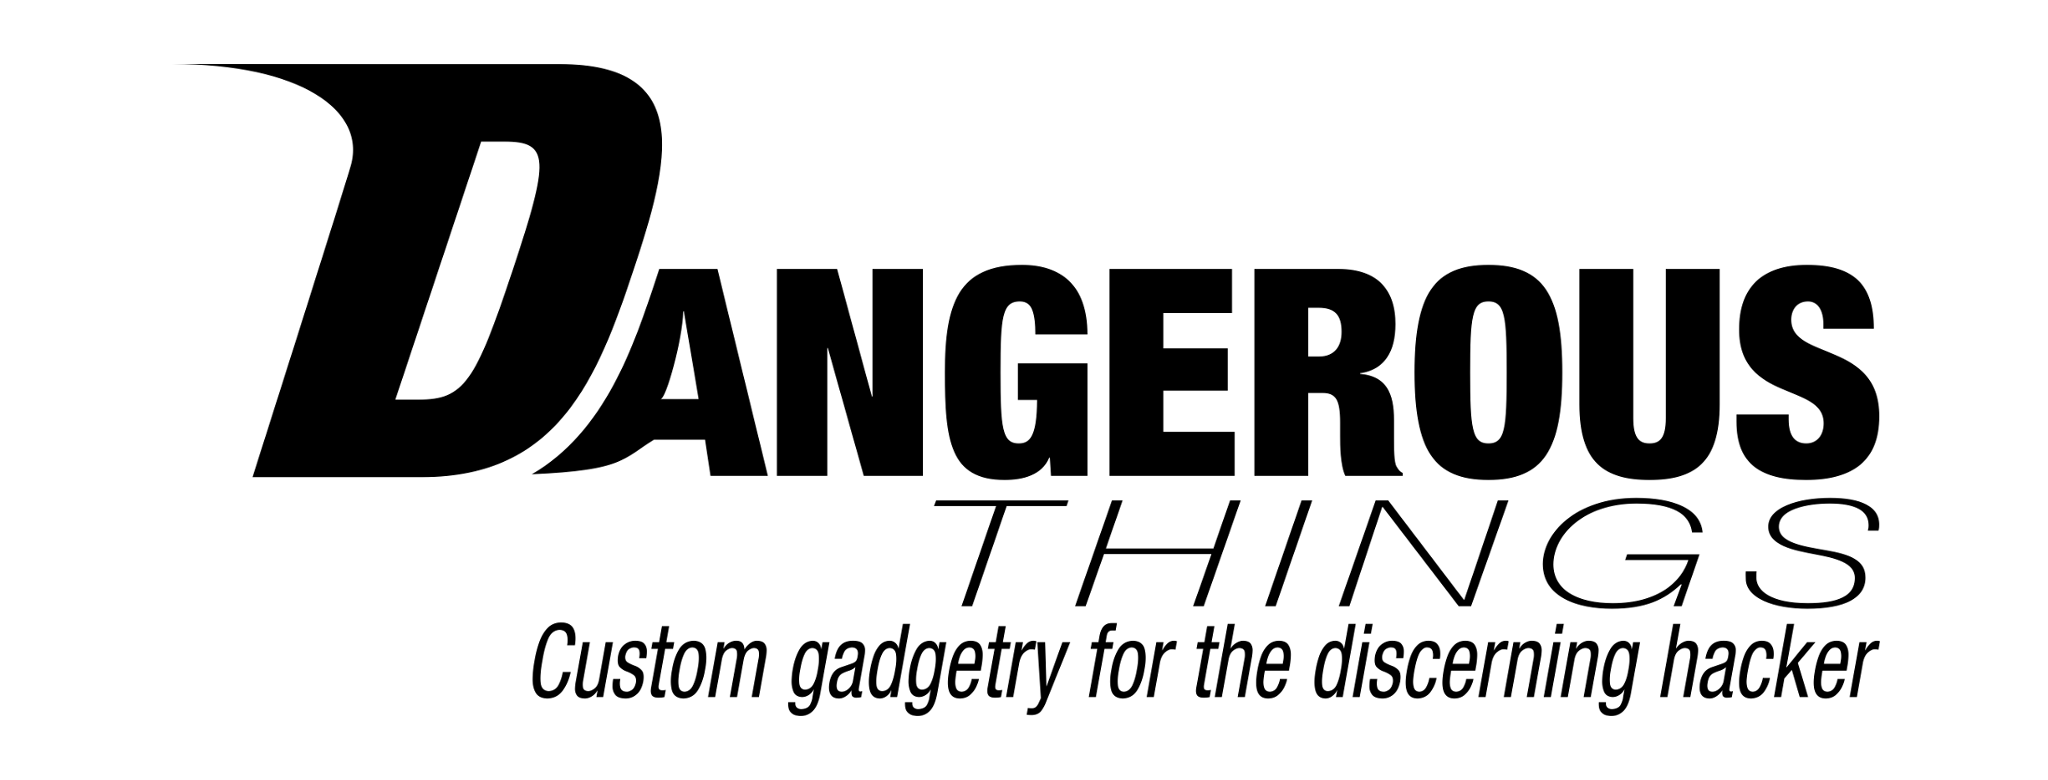 DangerousThings.com